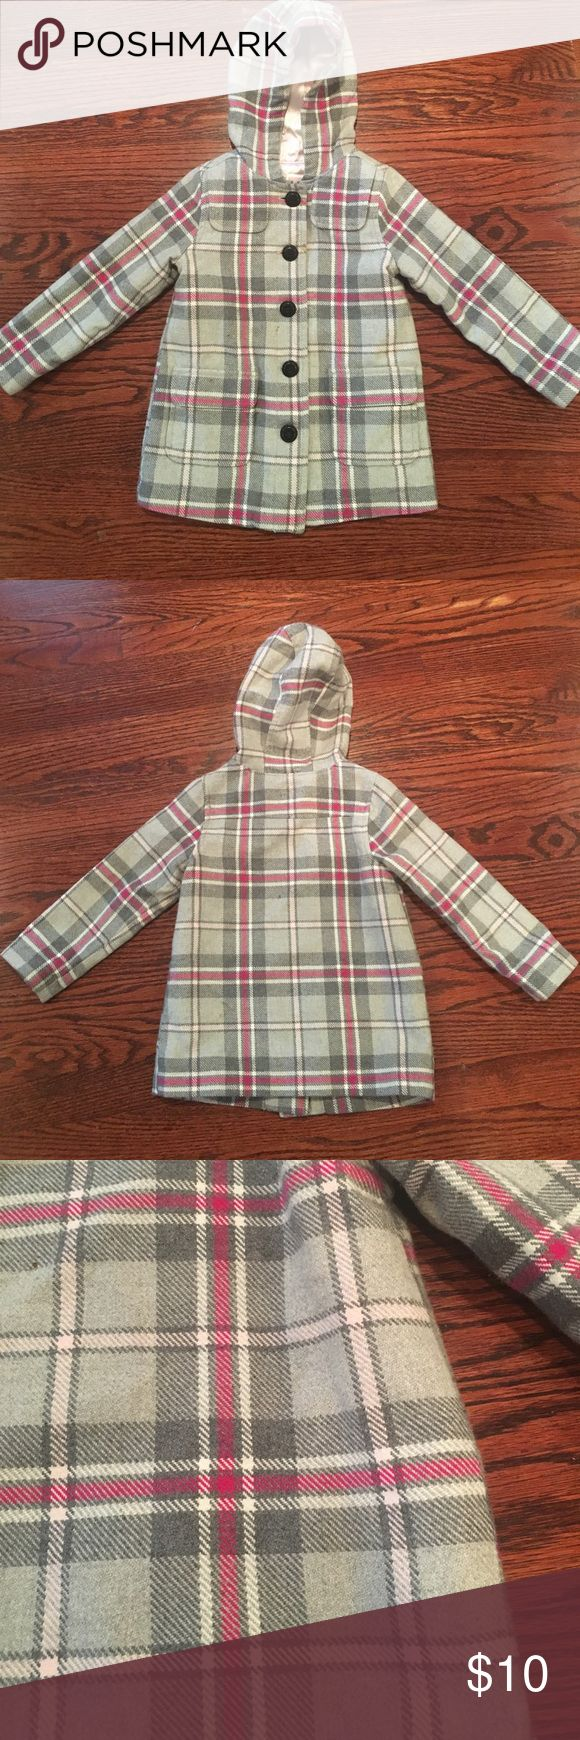 Old Navy Girls Pea Coat Adorable hey and pink plaid Pea Coat with black buttons and hood.  Two flap front pockets.  Size 3T.  In good used condition. Old Navy Jackets & Coats Pea Coats